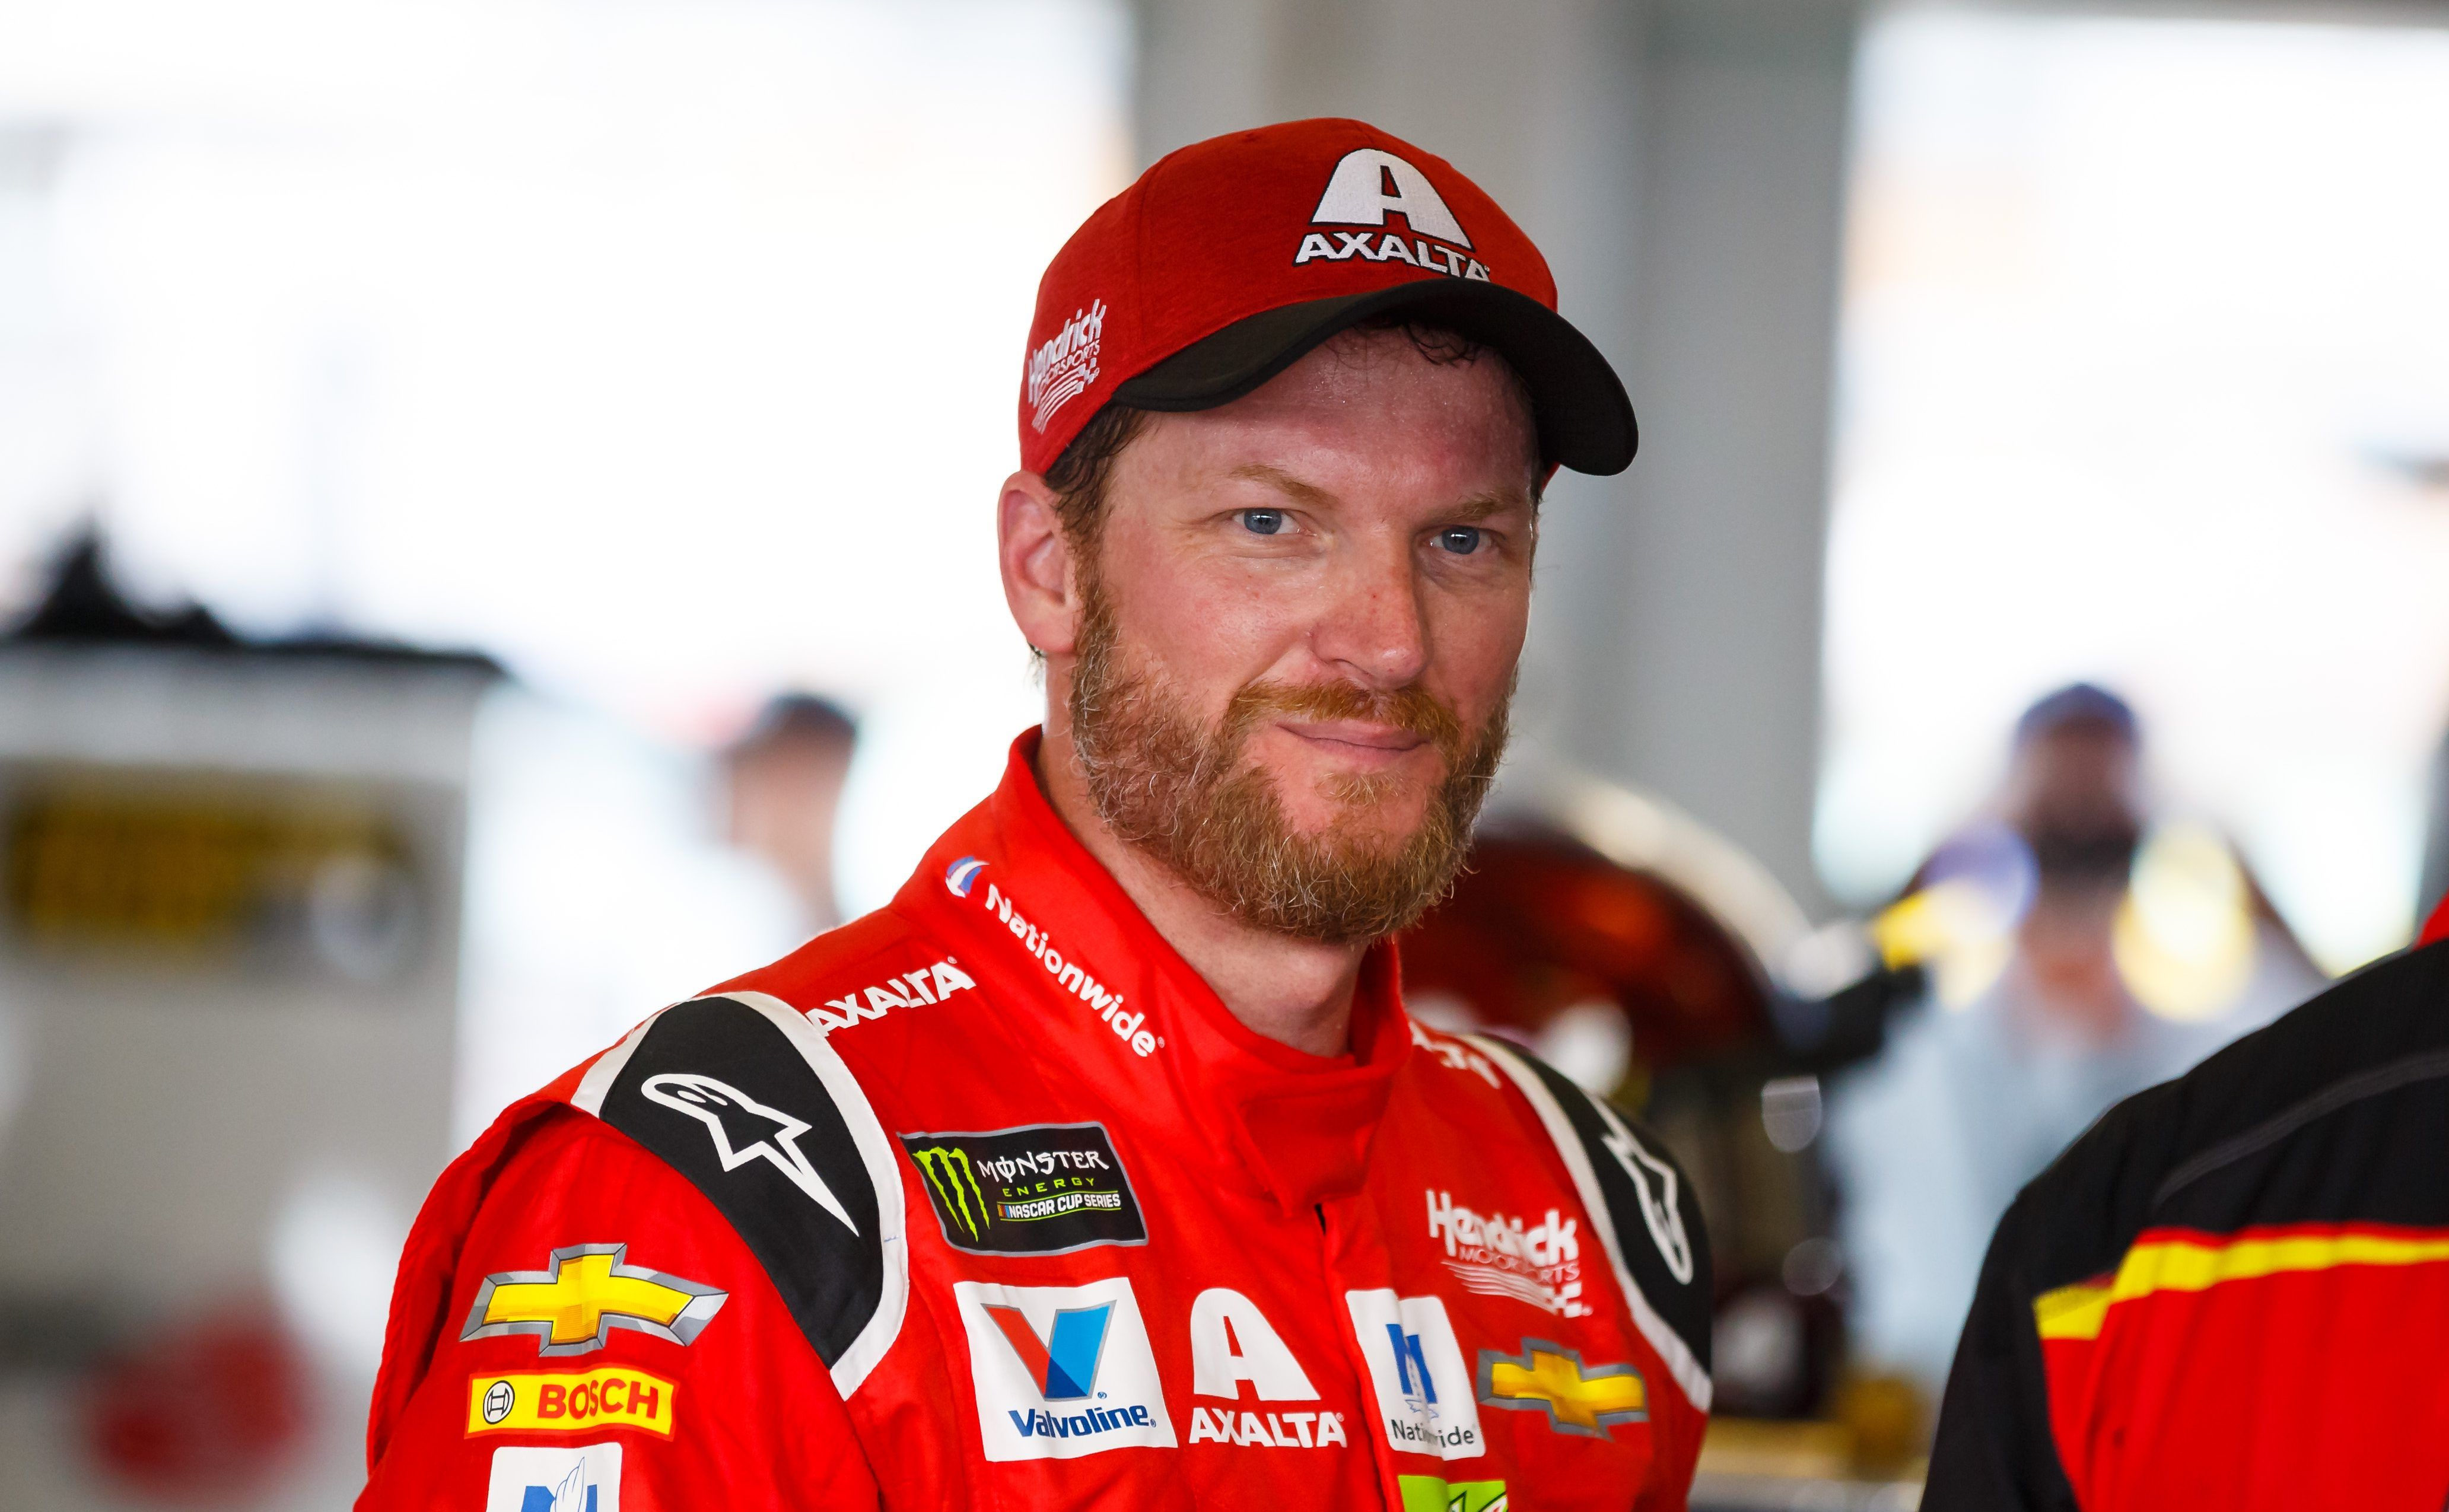 Dale Earnhardt Jr. reacts to NASCAR CEO Brian France's 'very disappointing' arrest